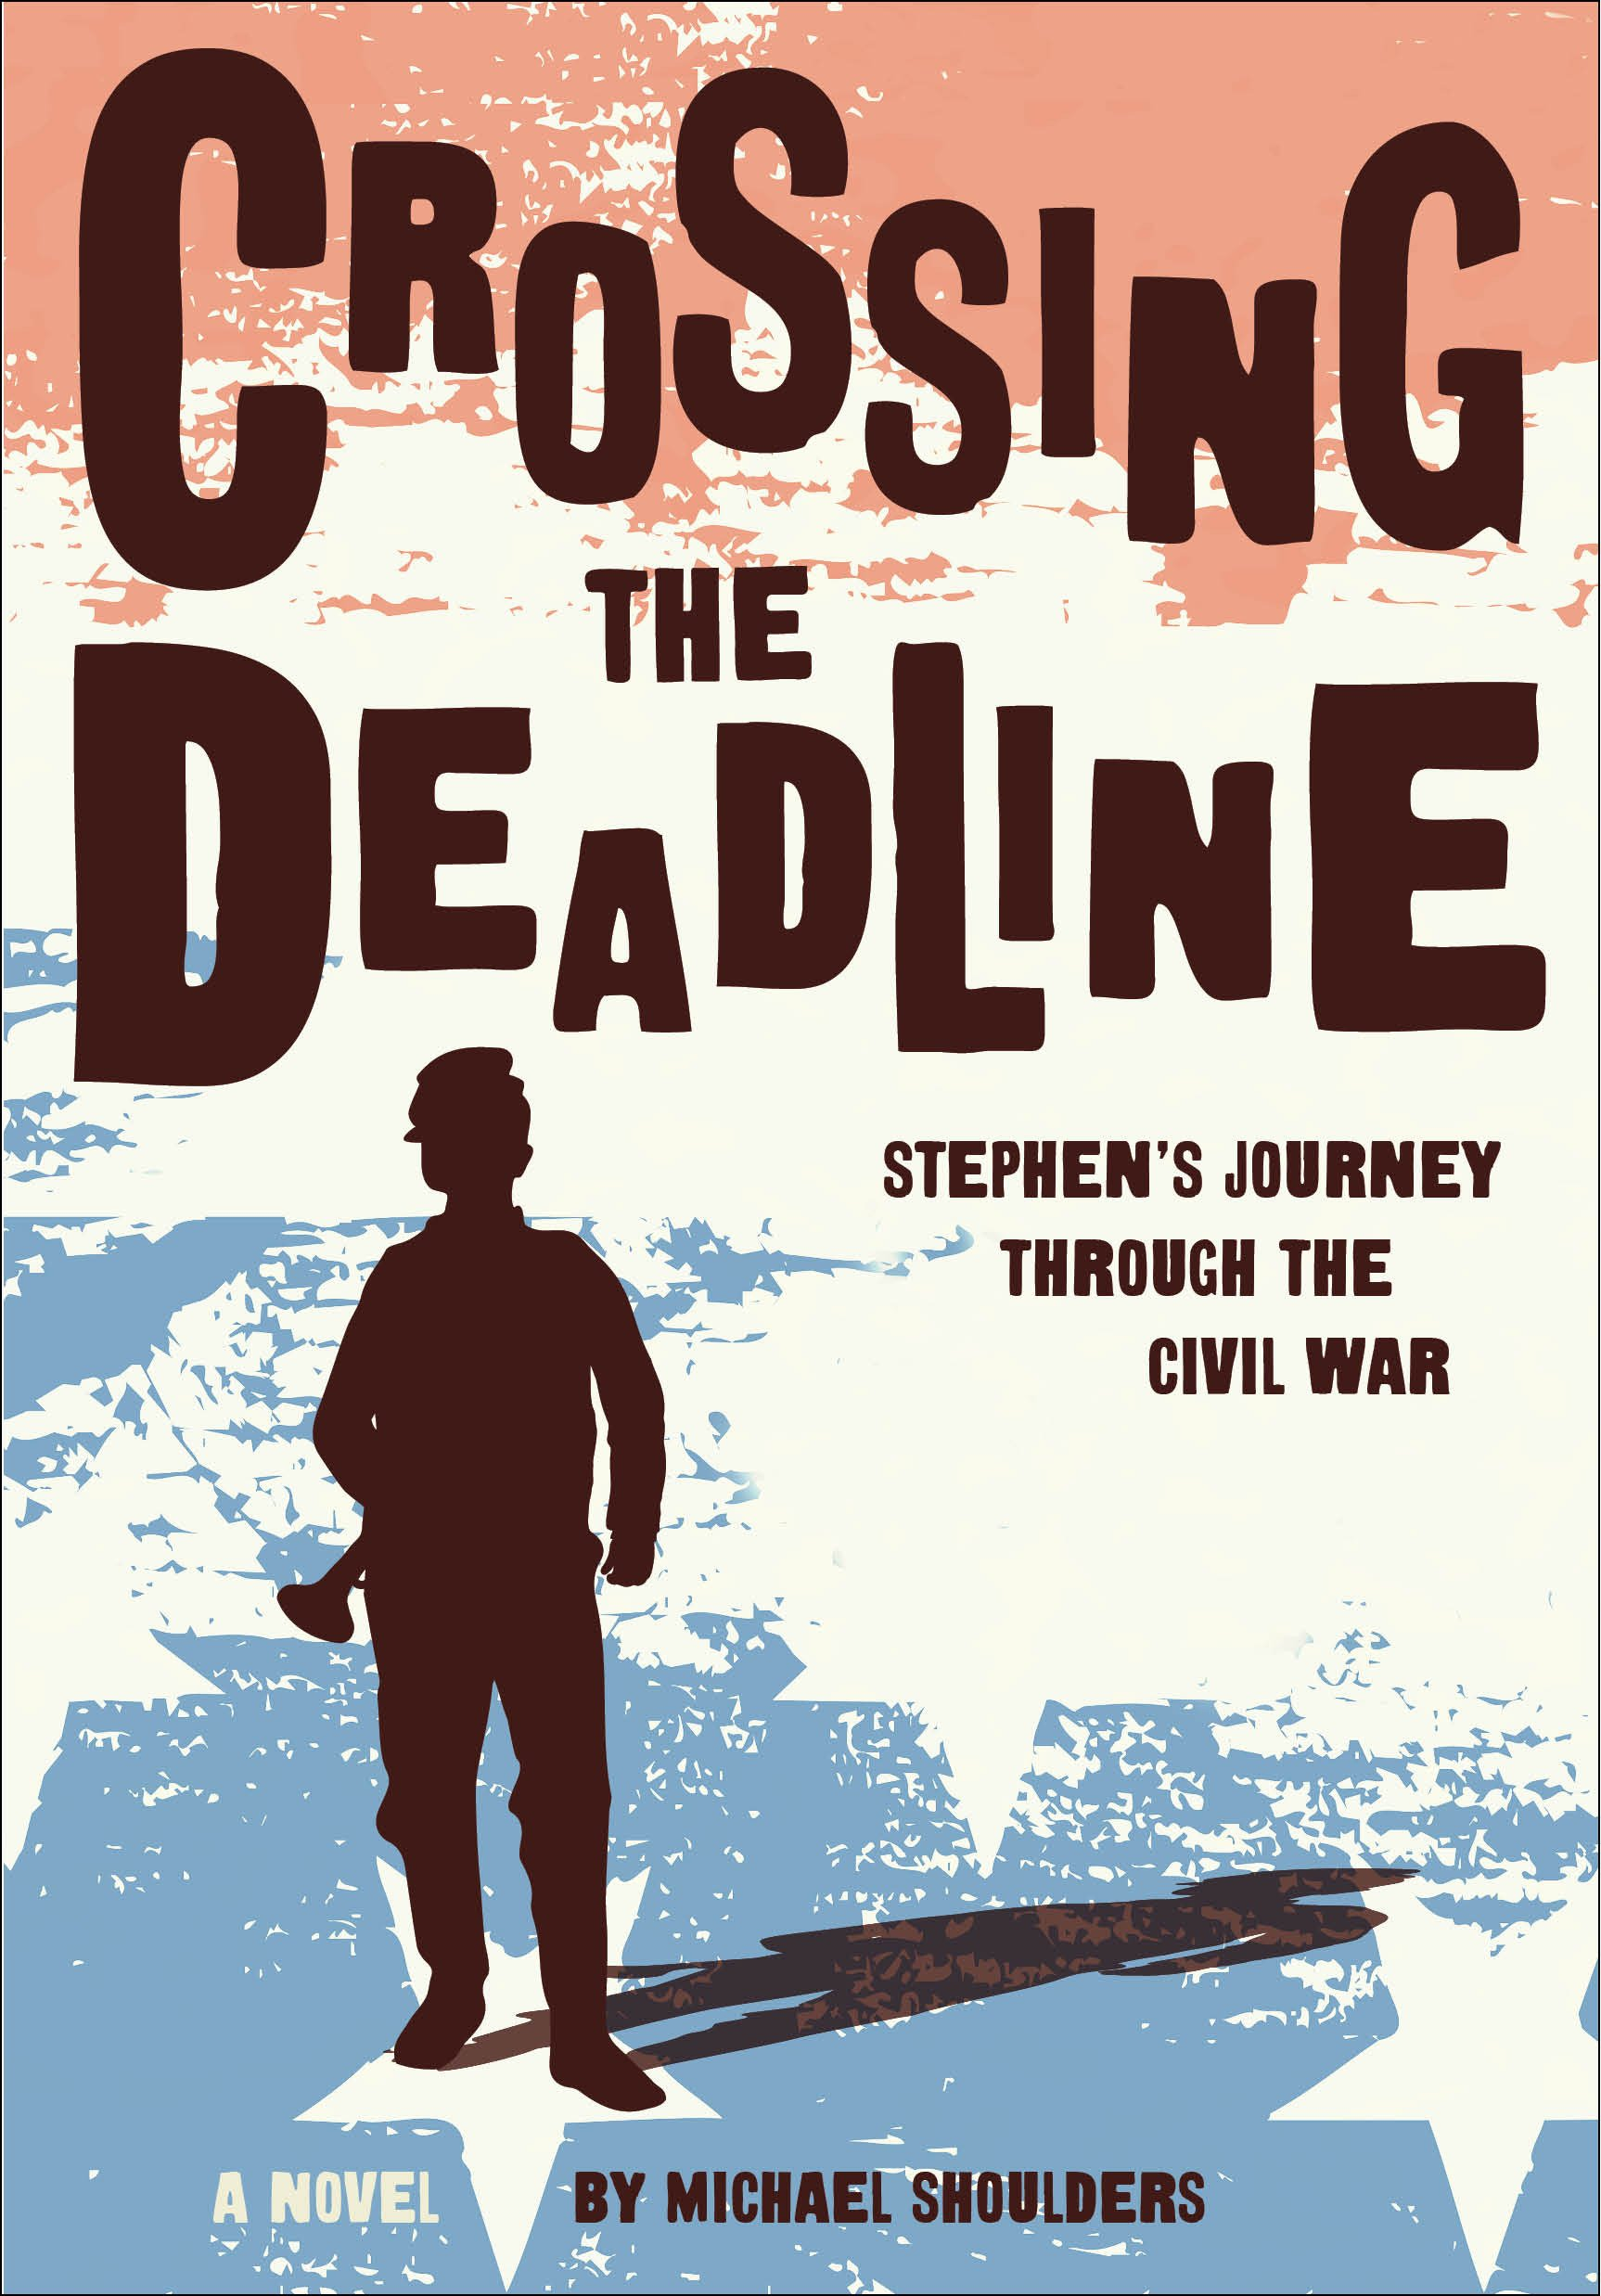 Crossing the Deadline: Stephen's Journey Through the Civil War by Sleeping Bear Press